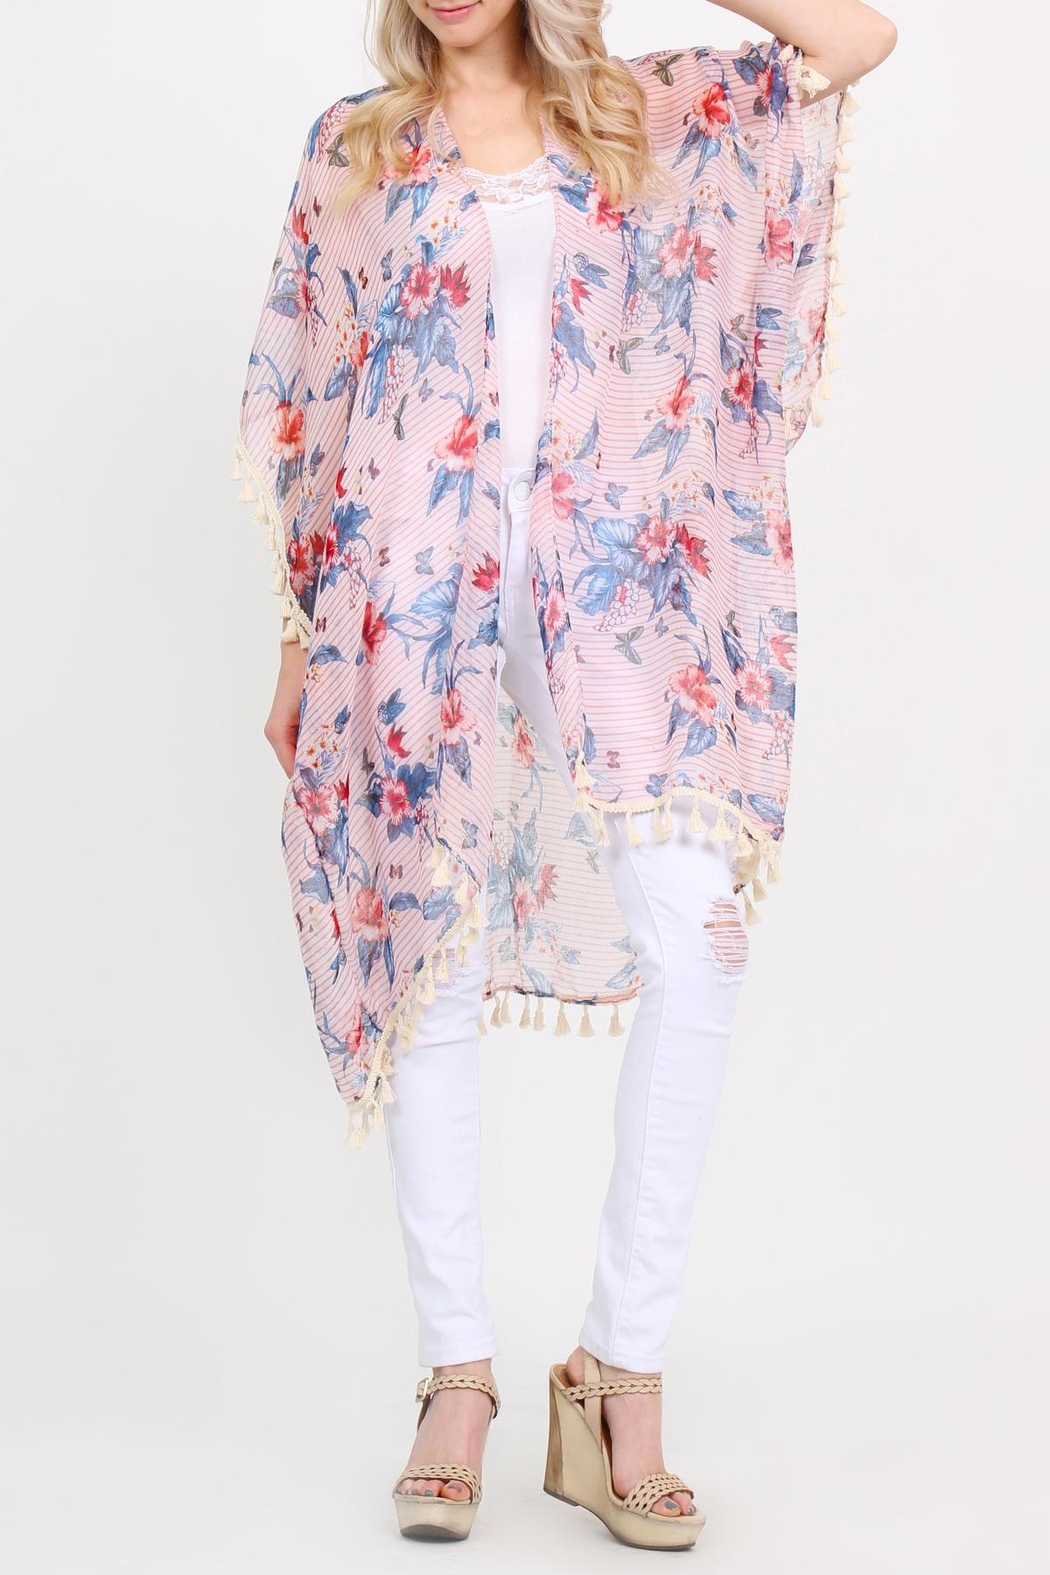 Riah Fashion Sheer-Tassel Floral Cardigan - Front Cropped Image